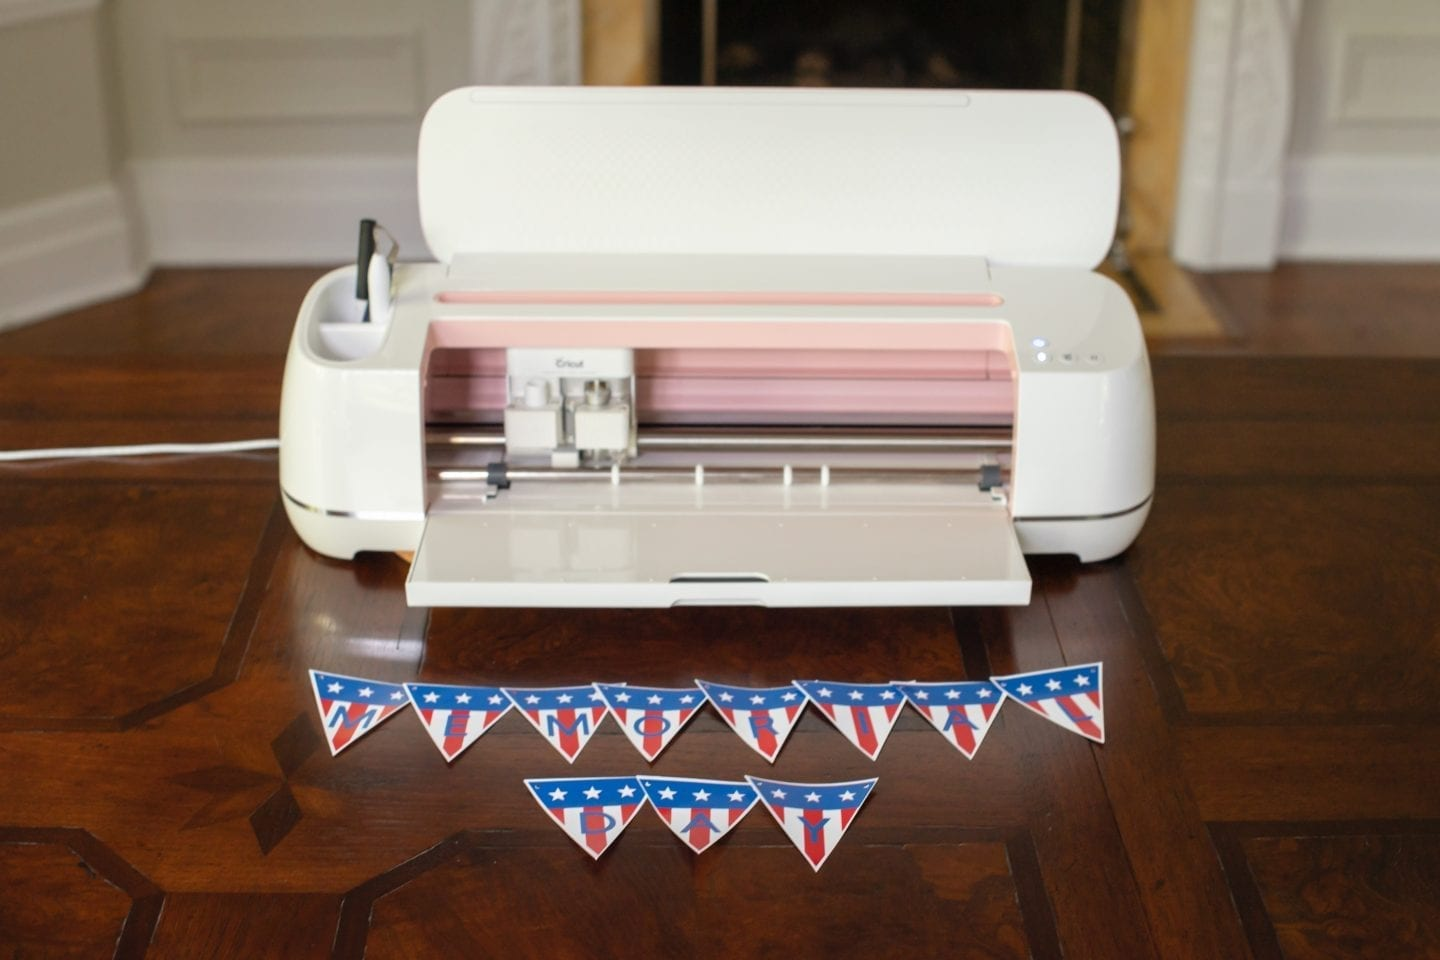 How to Get Started with the Cricut Maker?